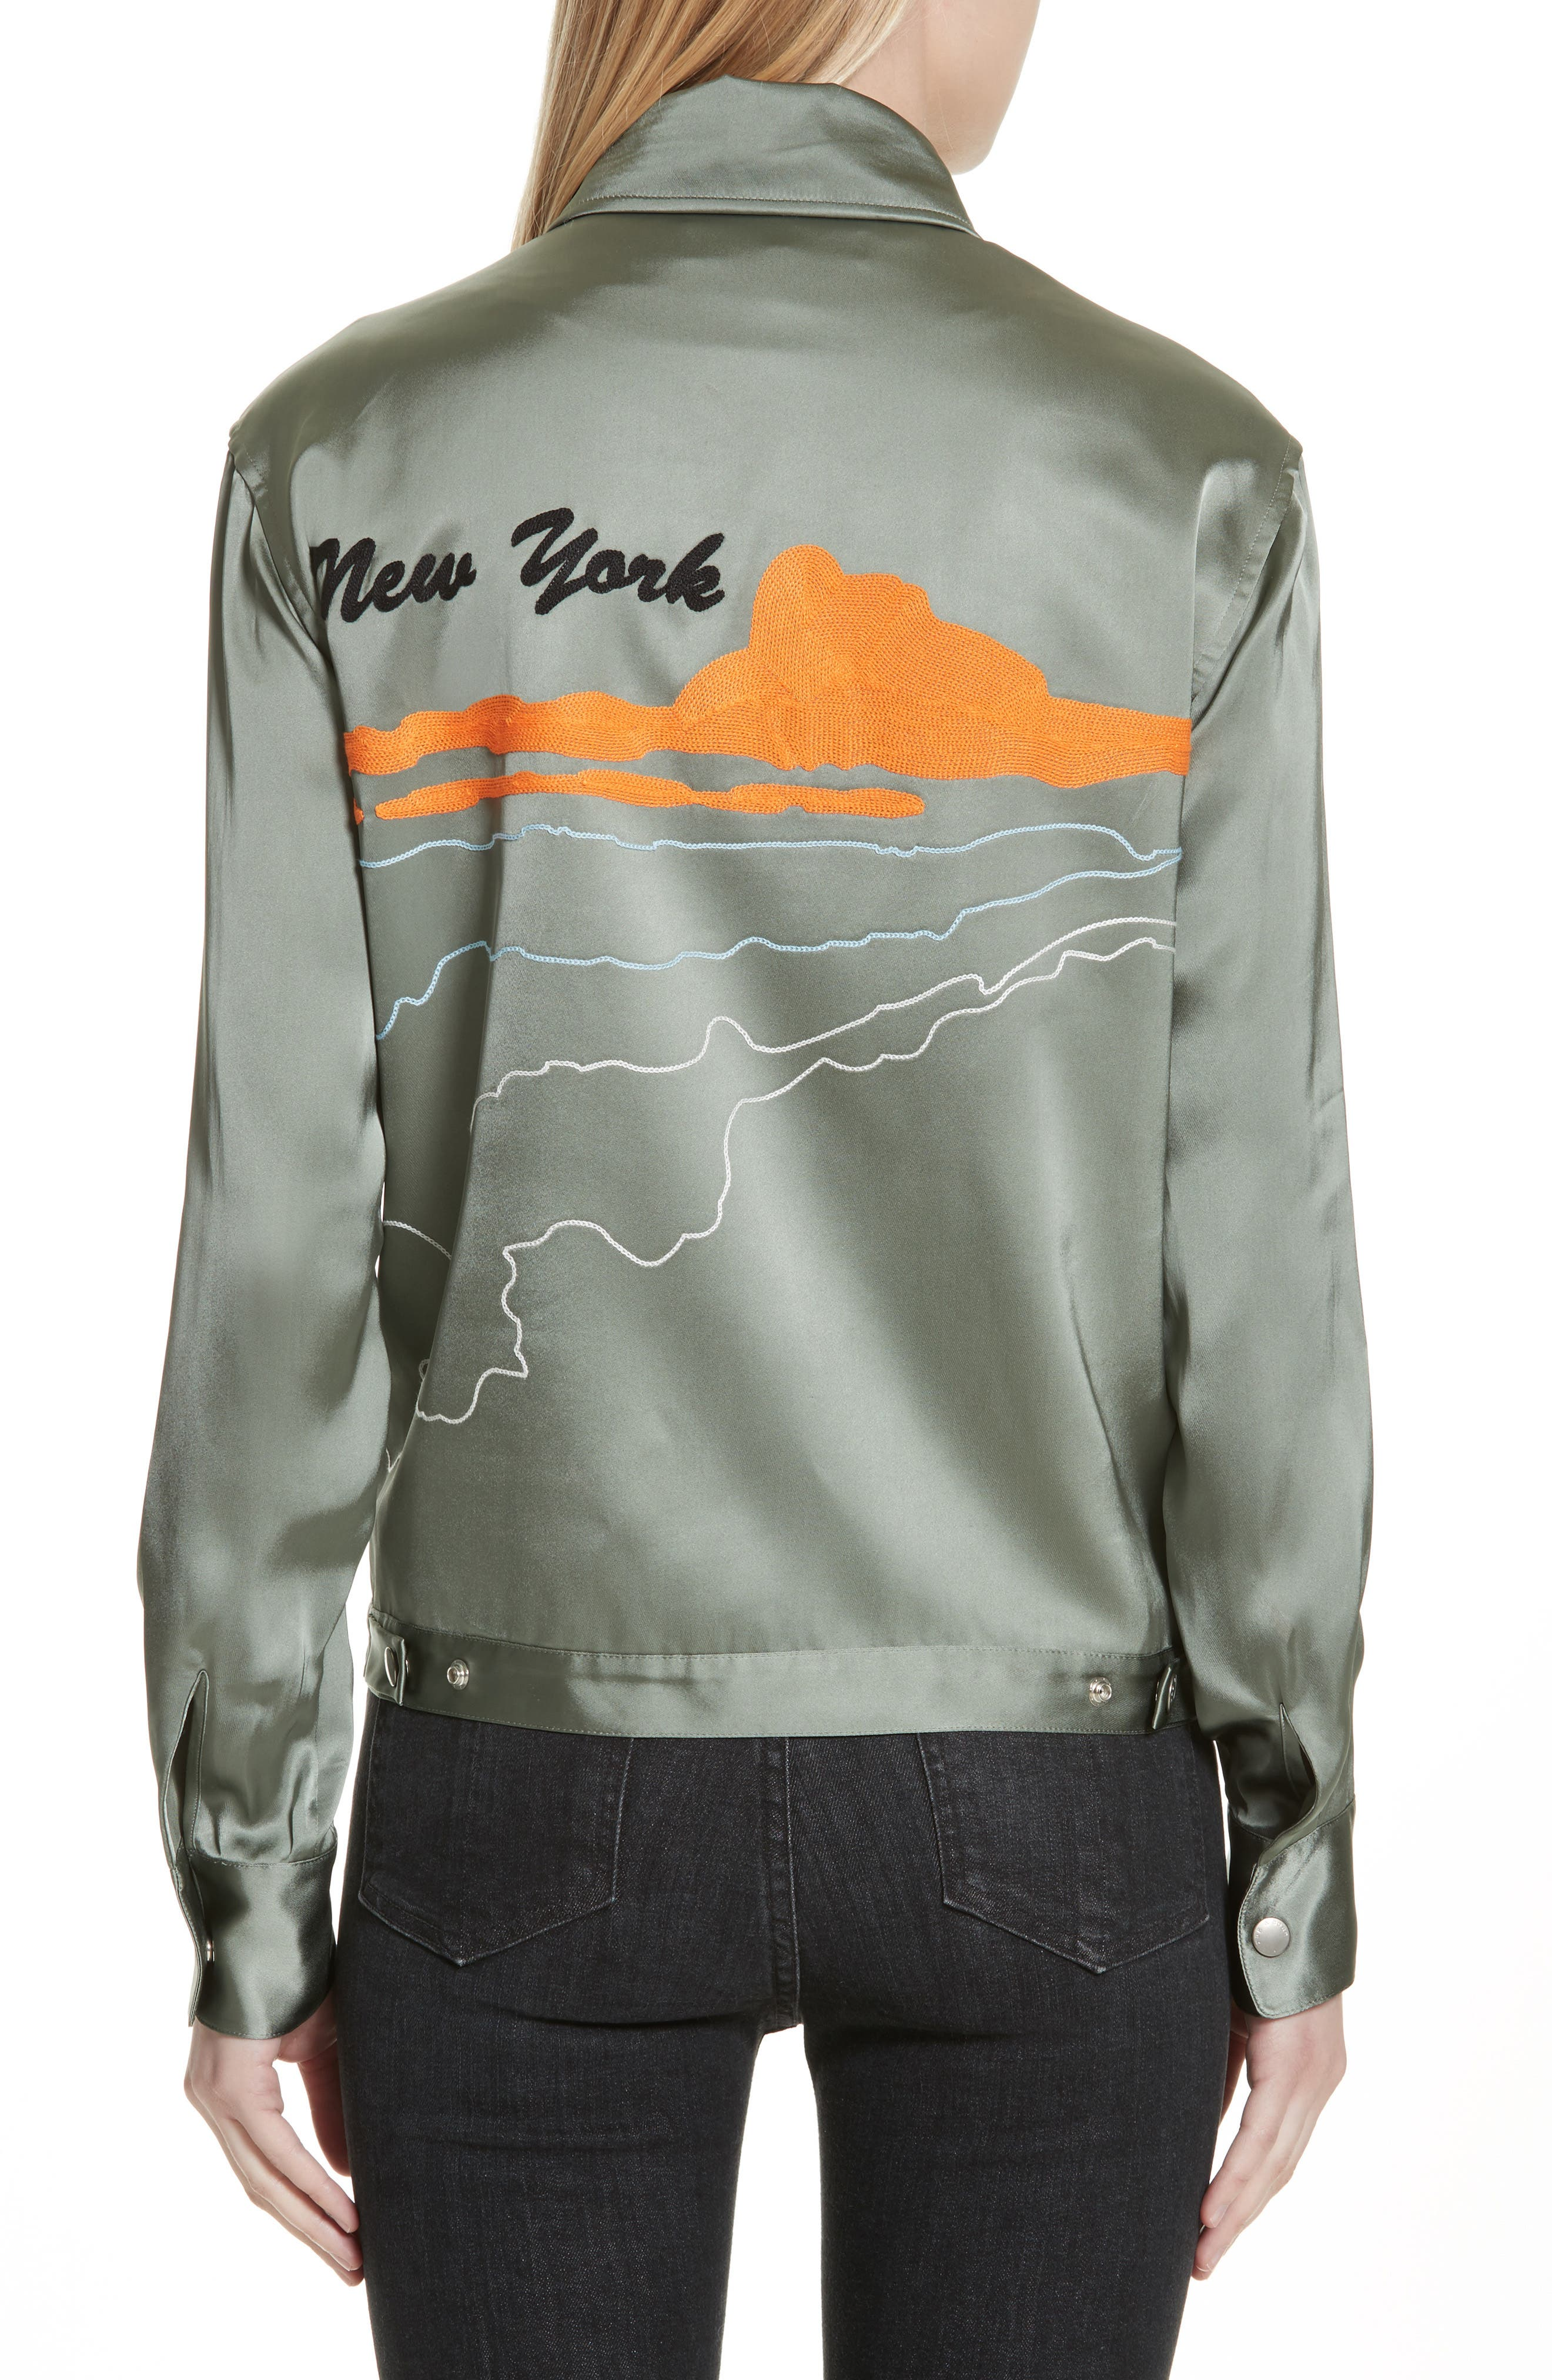 Roth Embroidered Satin Jacket,                             Alternate thumbnail 2, color,                             350